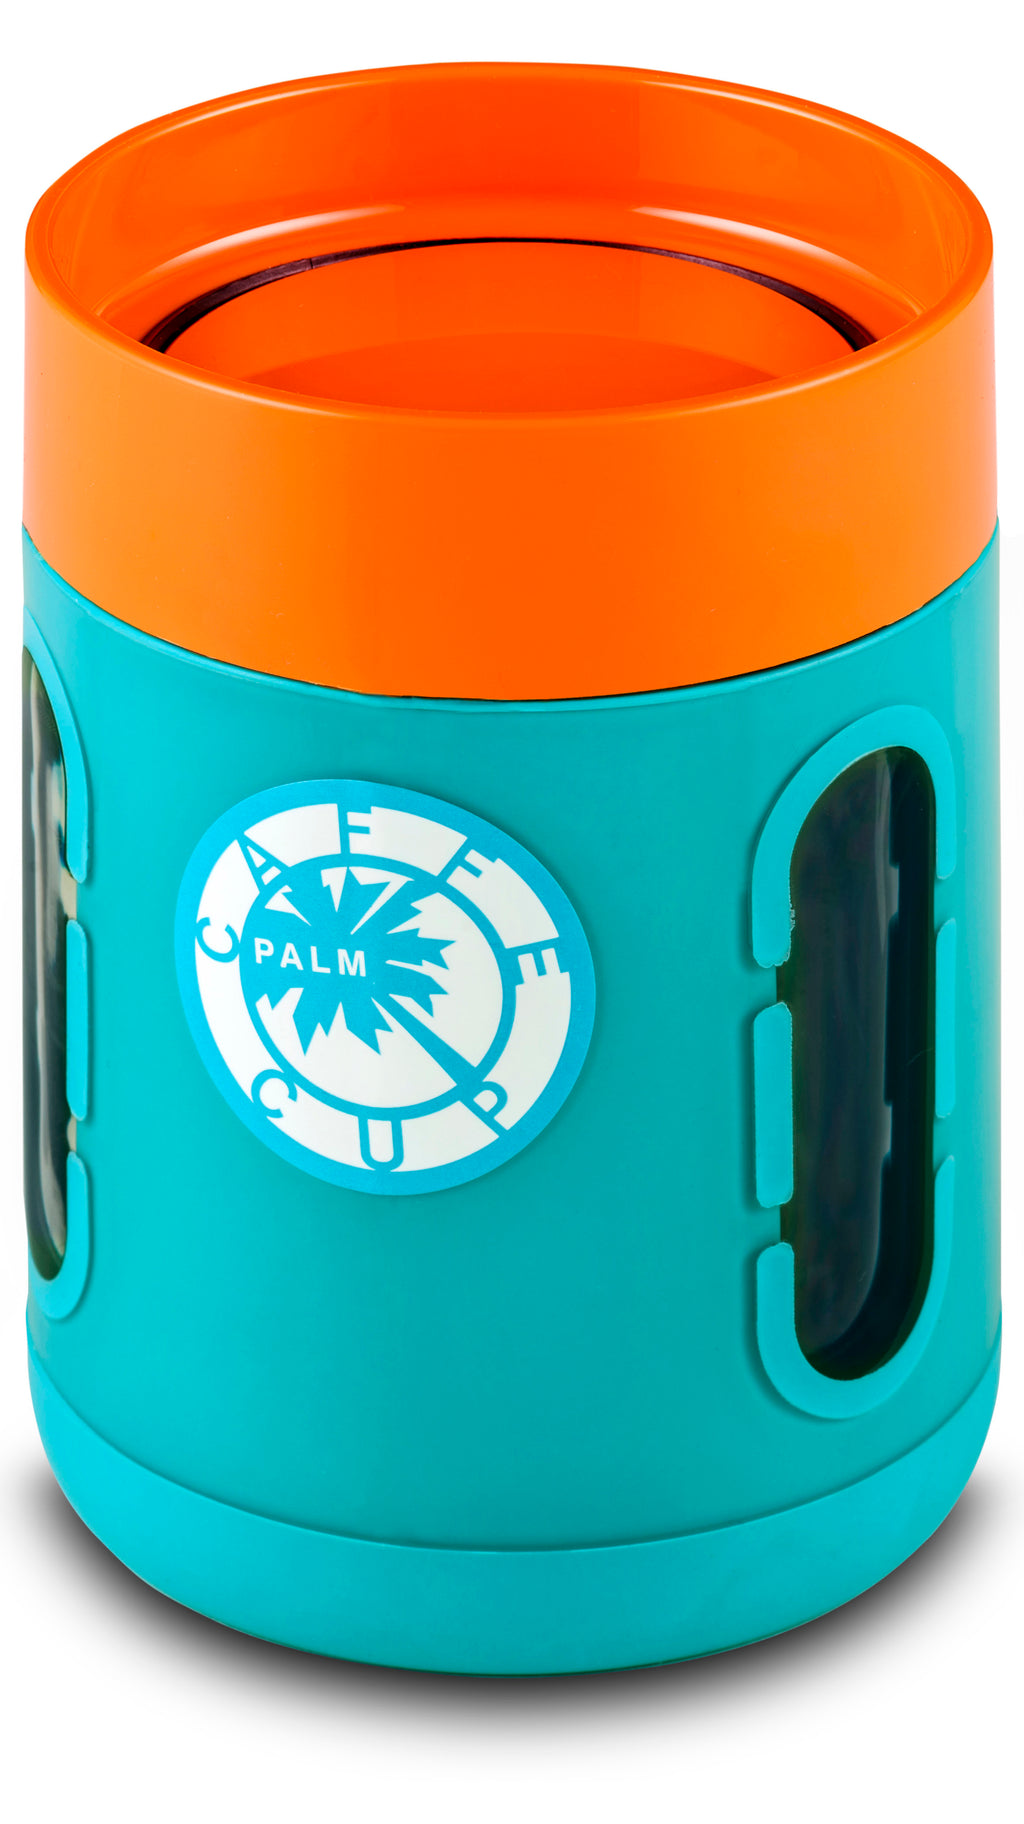 Palm Caffe Cup - Blue/Orange